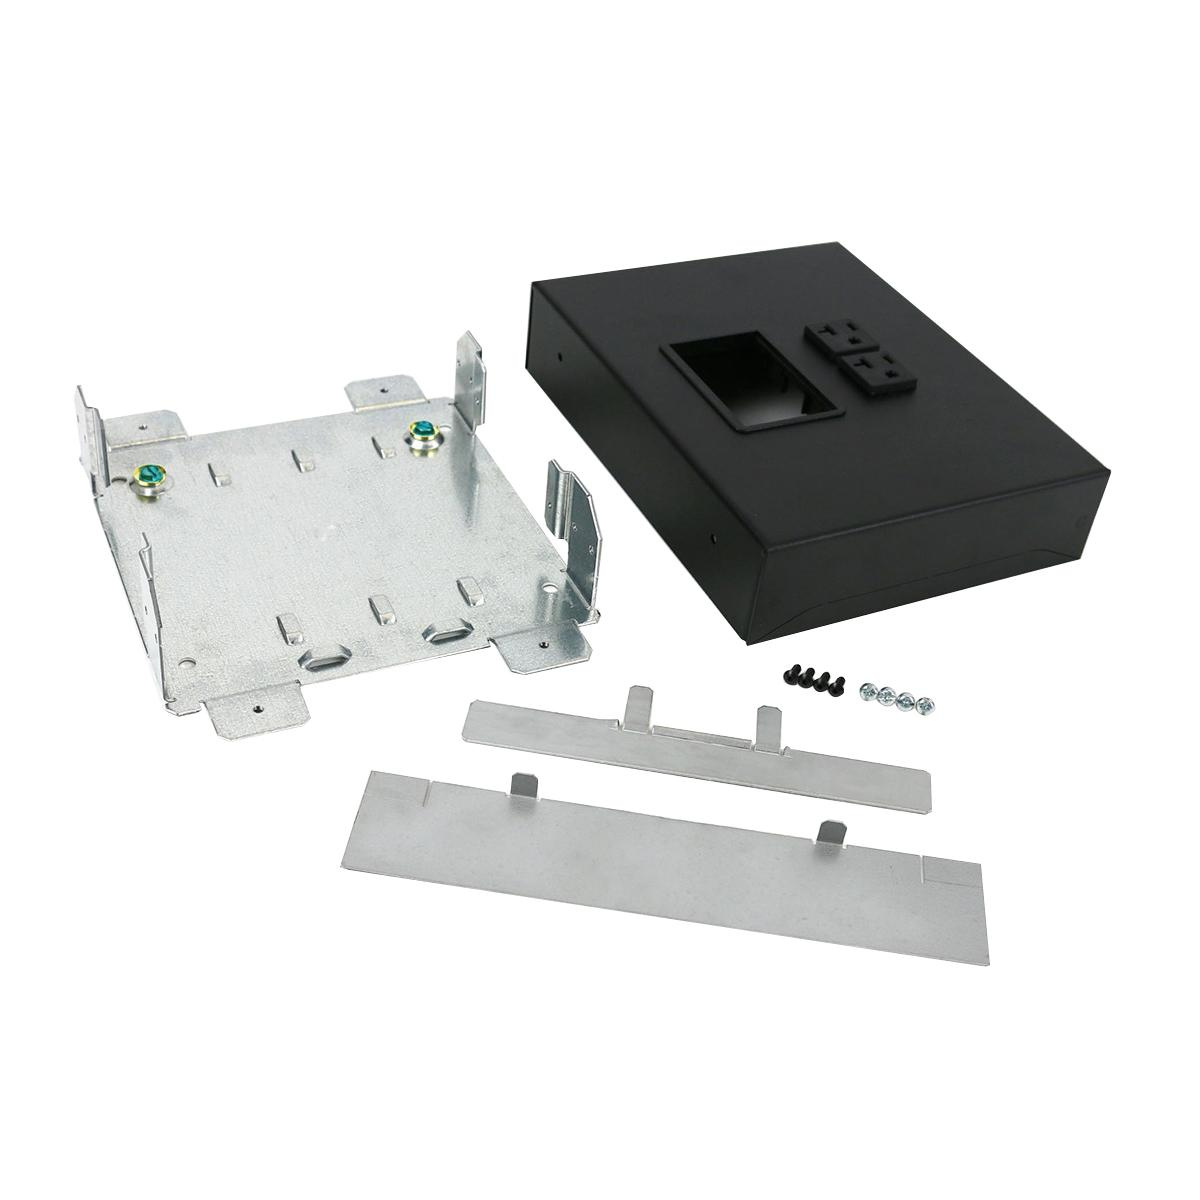 Wiremold Ofr48 2mrtc Transition Box Steel Black Powder Coated For